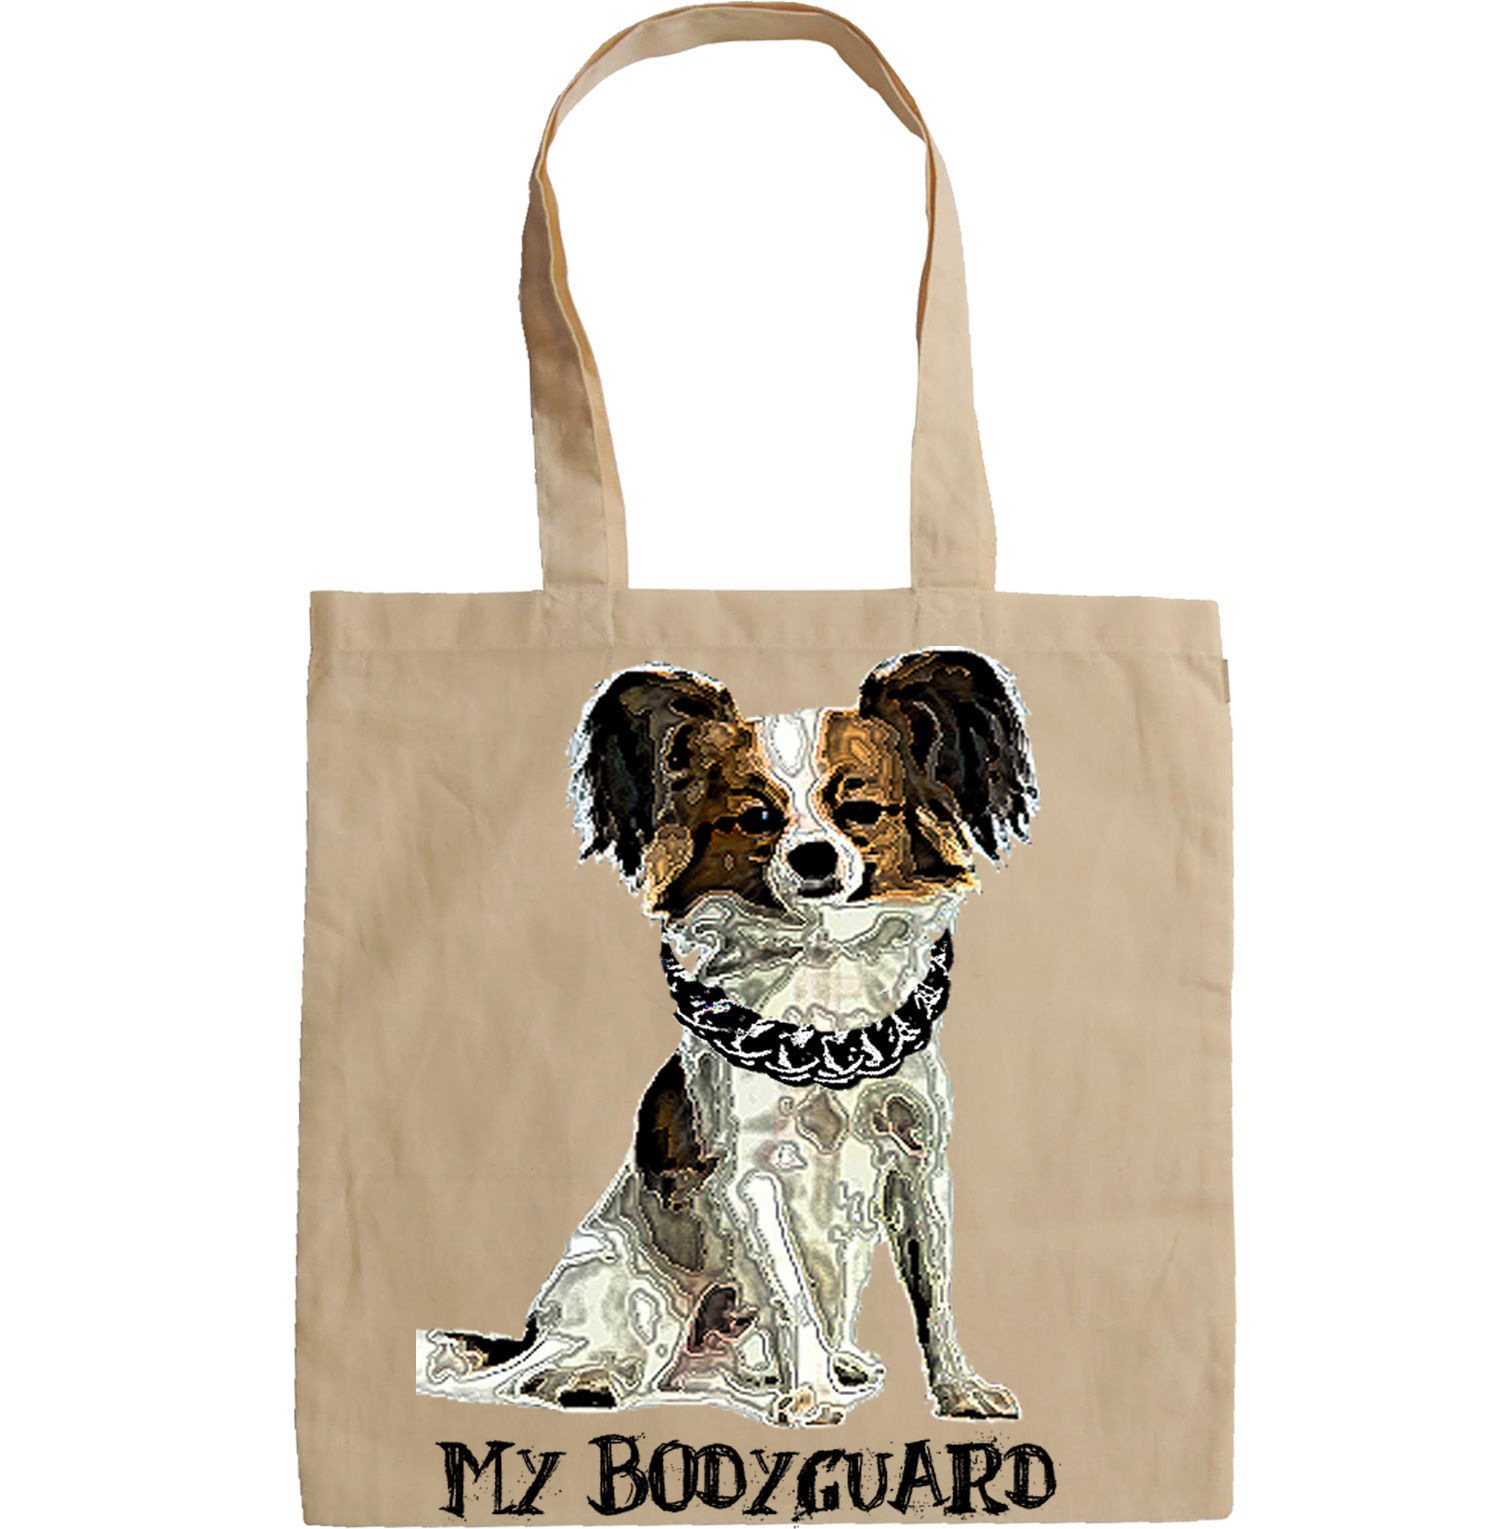 CHIHUAHUA MY BODYGUARD 1 -  NEW AMAZING GRAPHIC HAND BAG/TOTE BAG